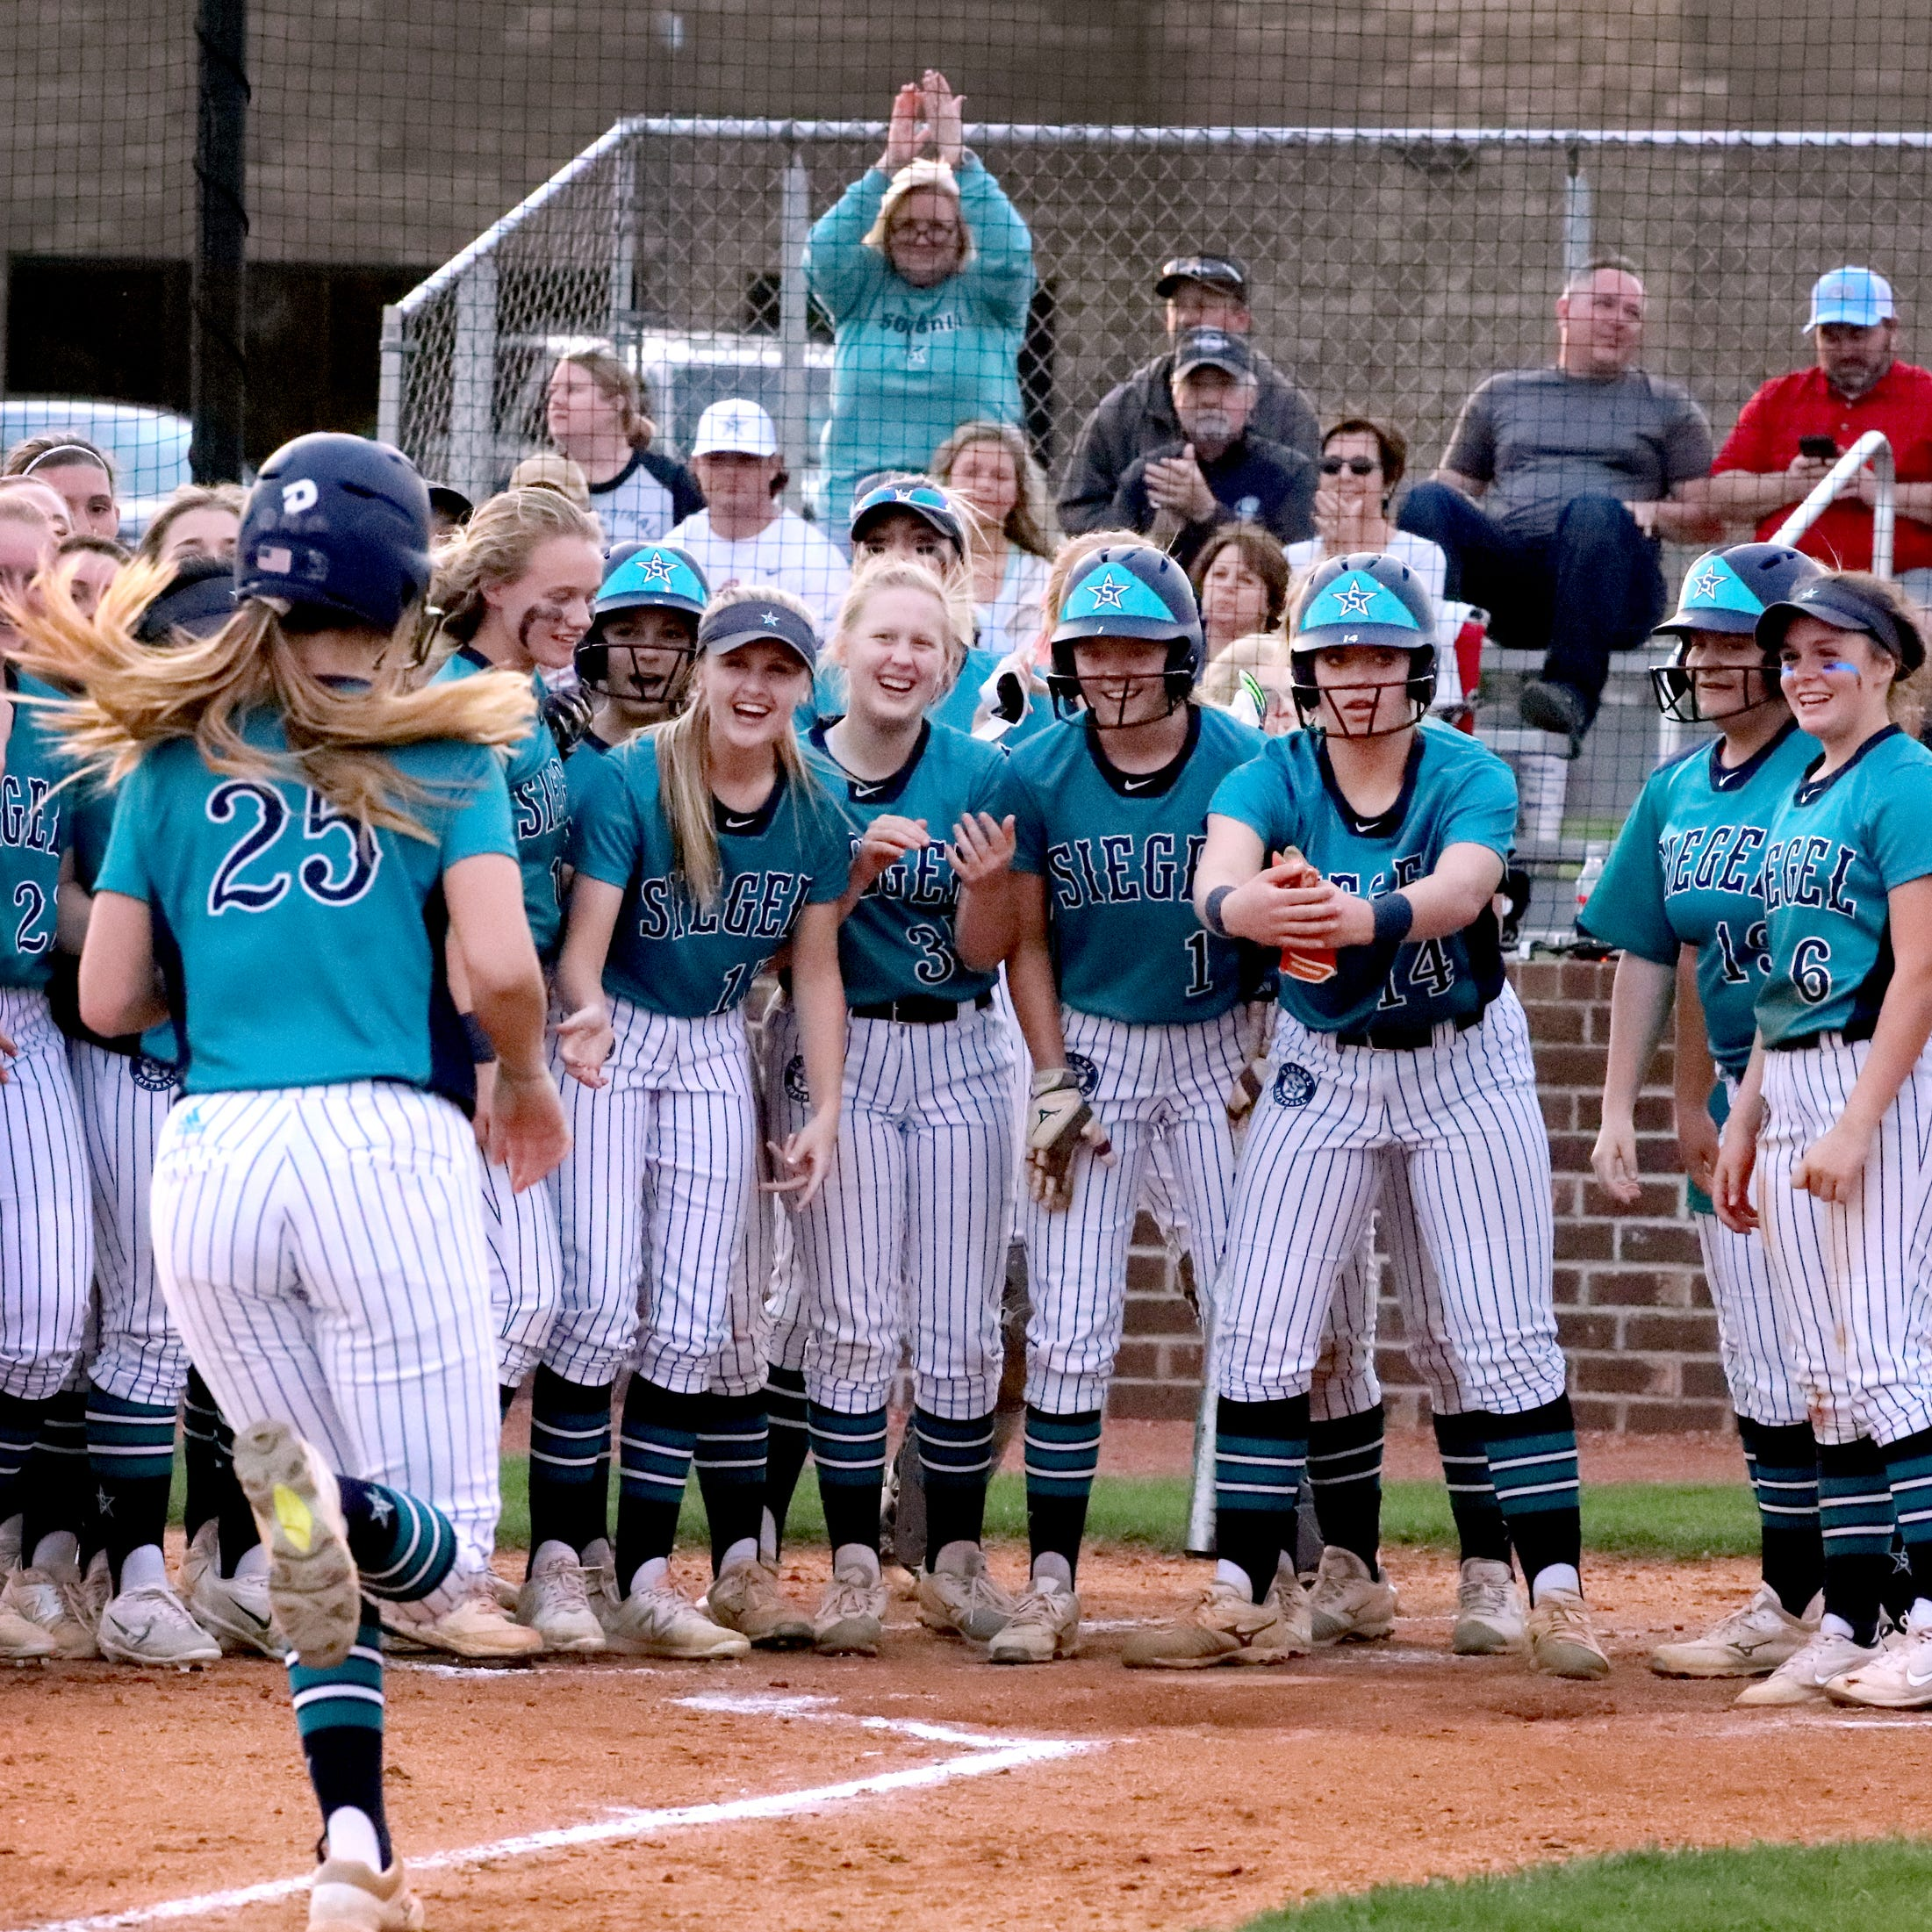 Siegel's Sophie Golliver (25) is congratulated at home plate after hitting a home run against Riverdale on Thursday April 11, 2019, at Riverdale.